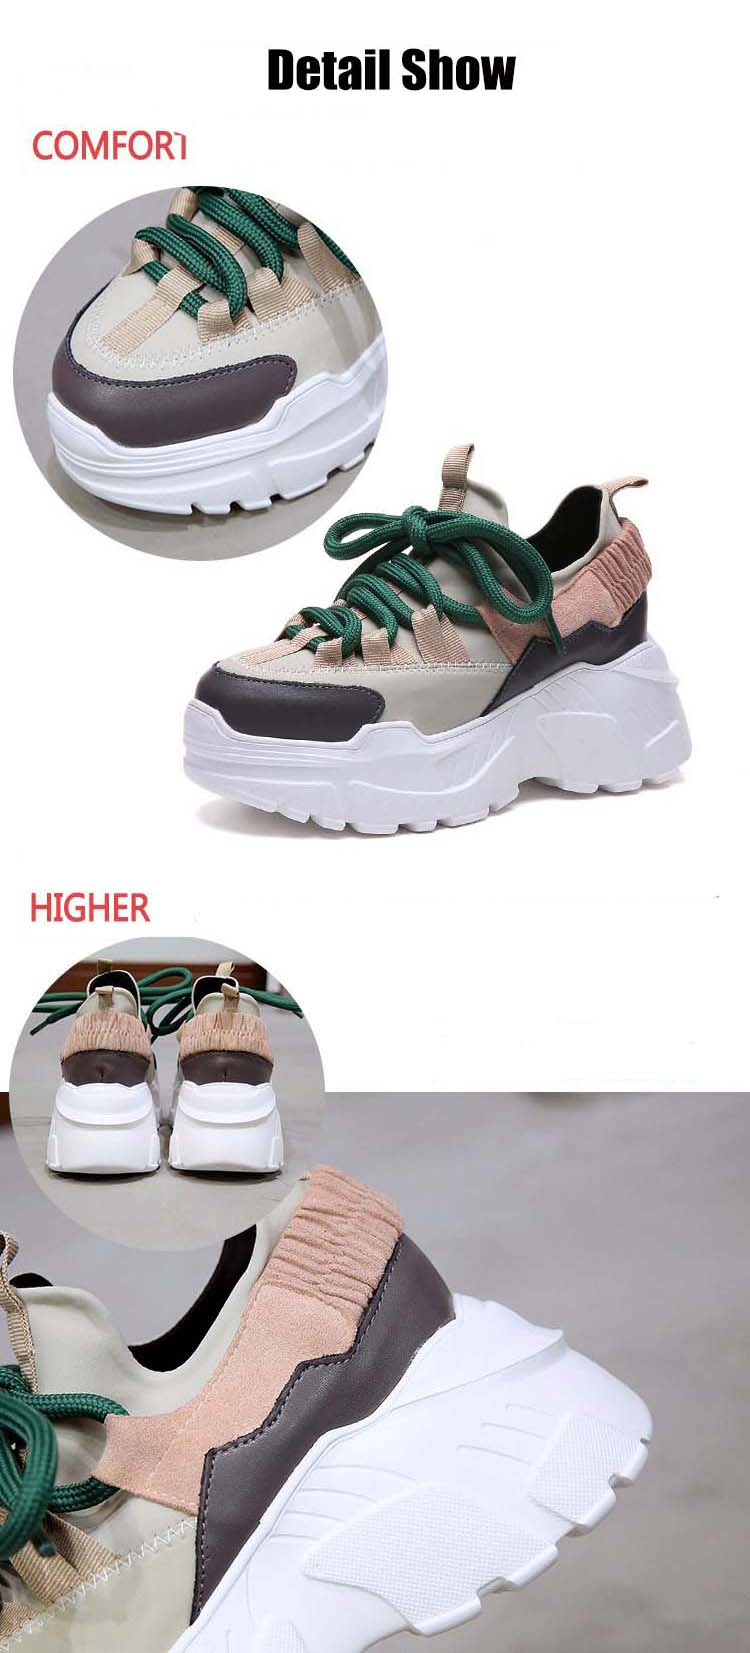 Hb73e048636a34c33afbf5c06a67695c19 Sooneeya Four Seasons Youth Fashion Trend Shoes Men Casual Ins Hot Sell Sneakers Men New Colorful Dad Shoes Male Big Size 35-46